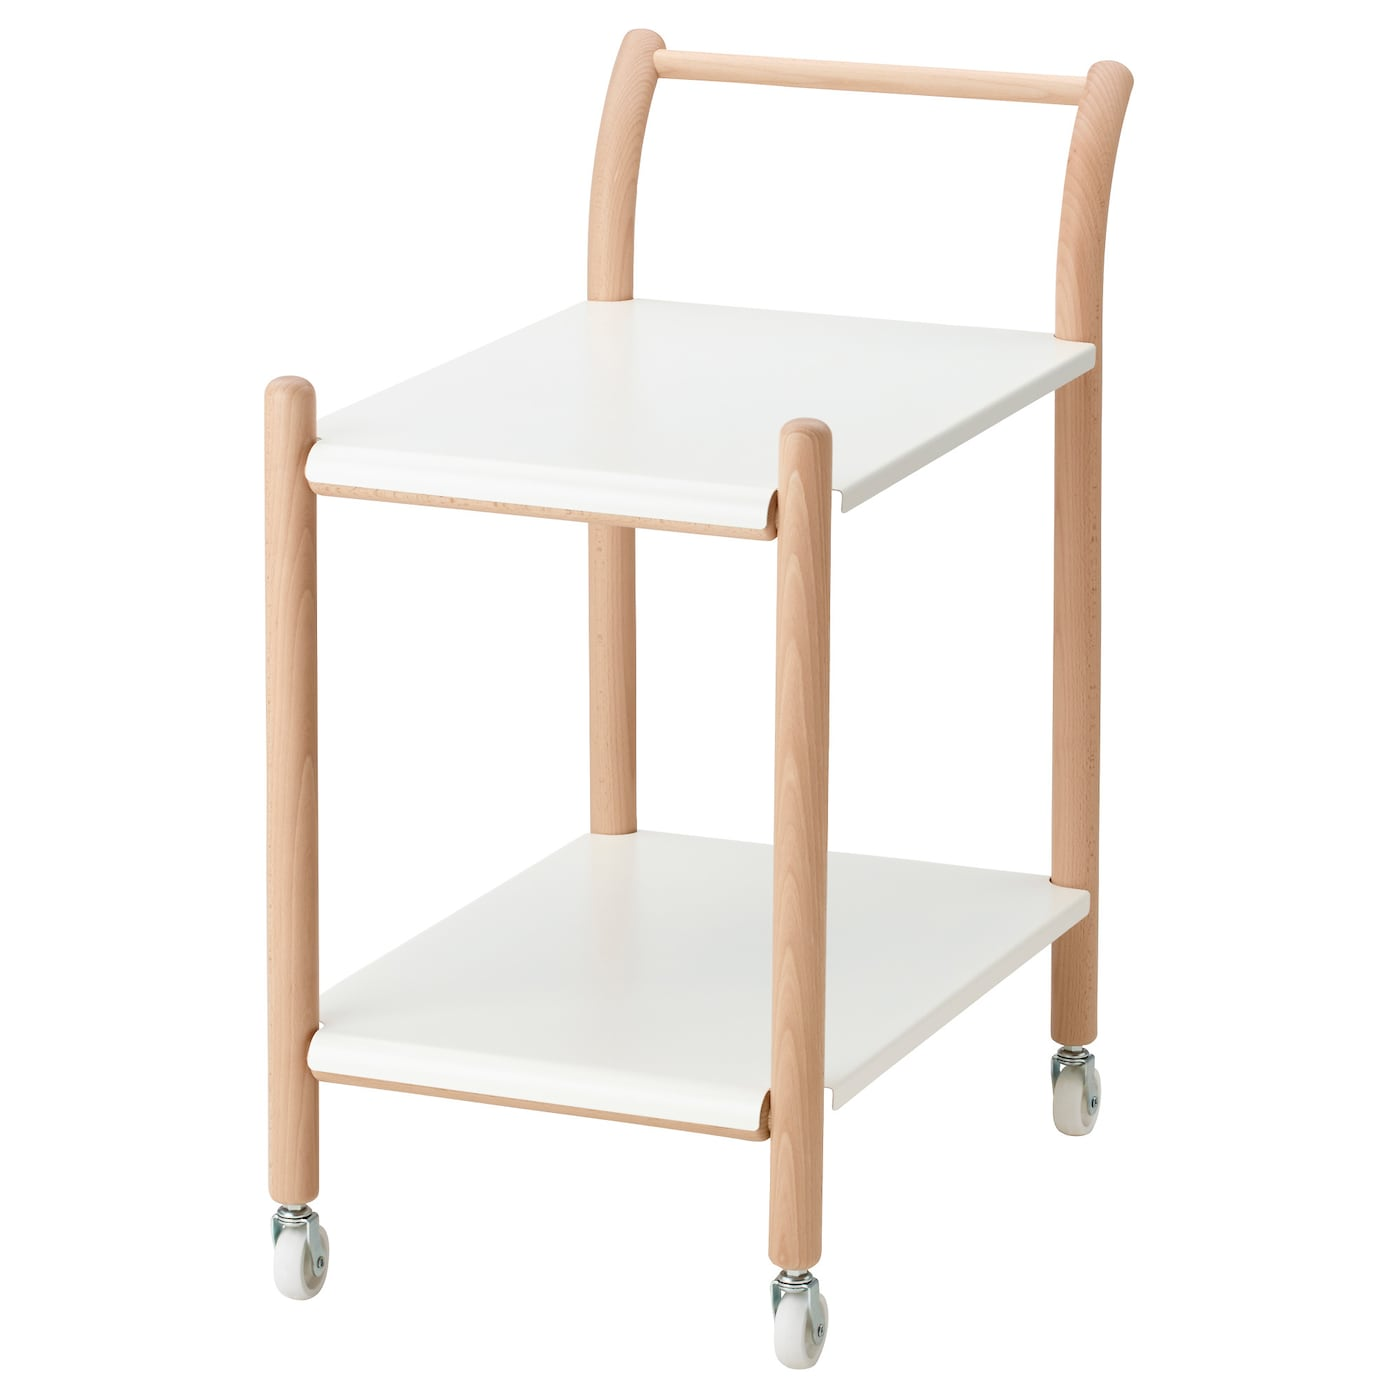 IKEA IKEA PS 2017 side table on castors 2 fixed shelves provide increased stability.